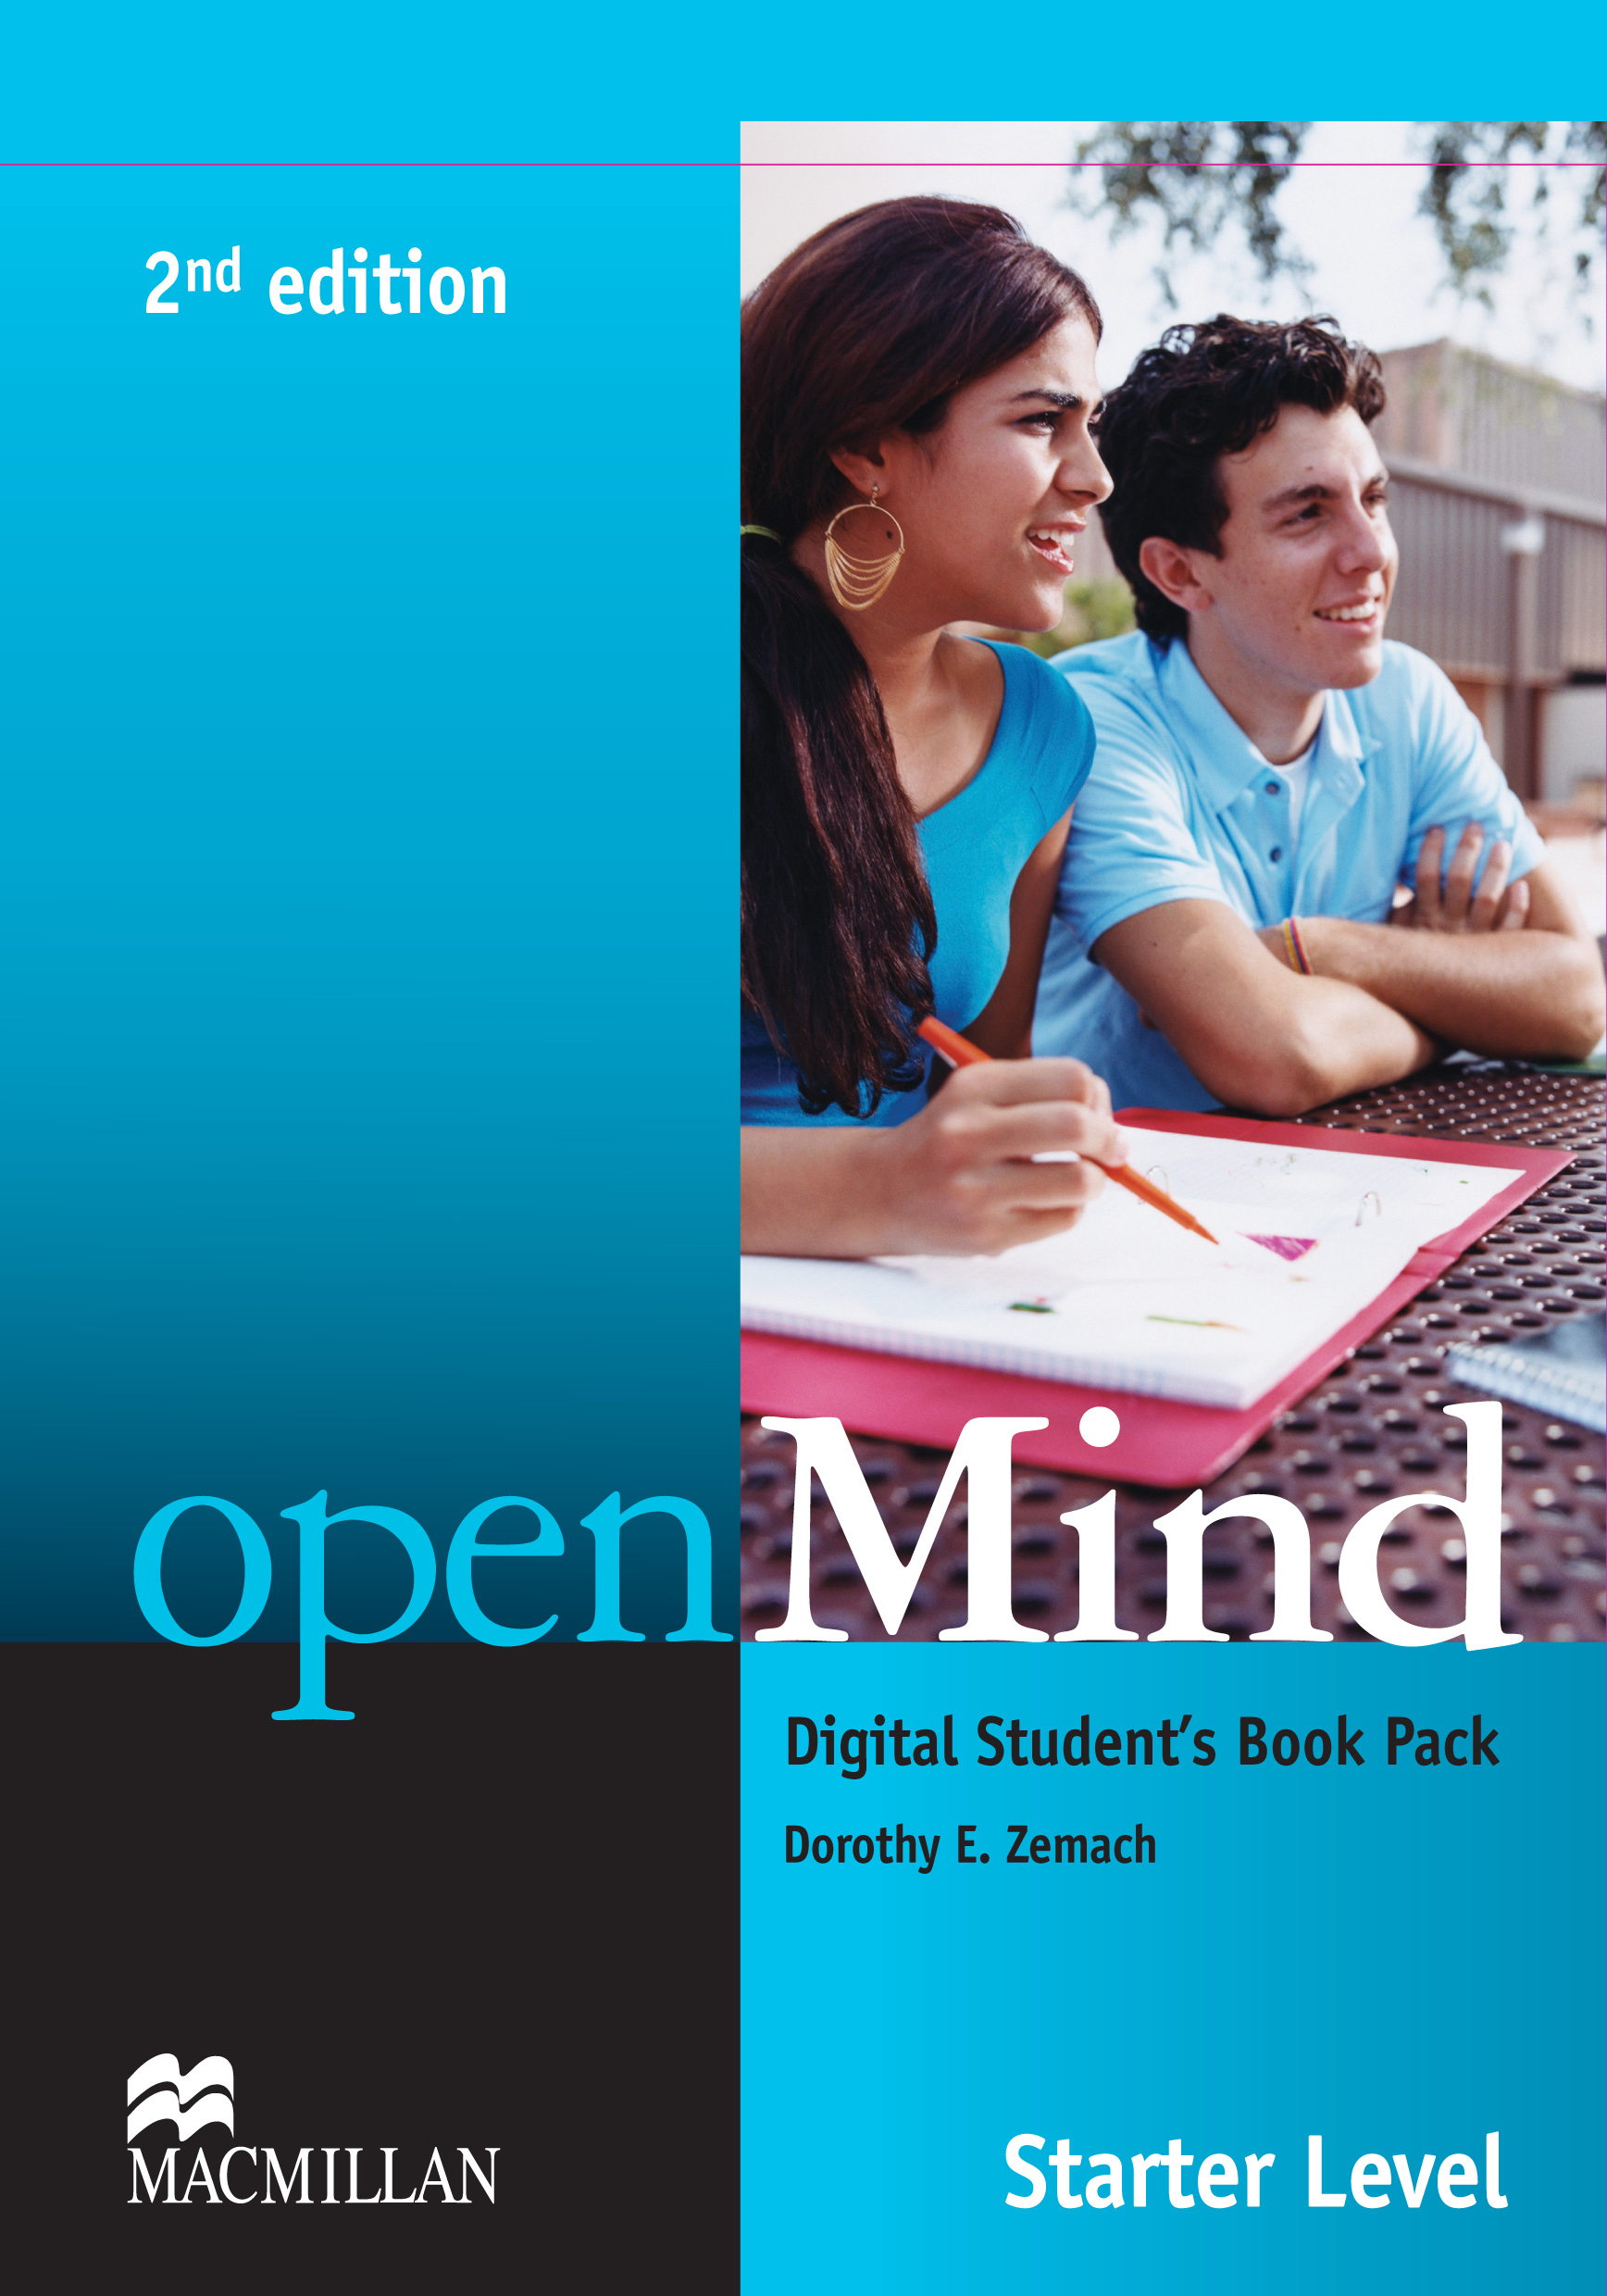 openMind 2nd Edition Starter Level Digital Student